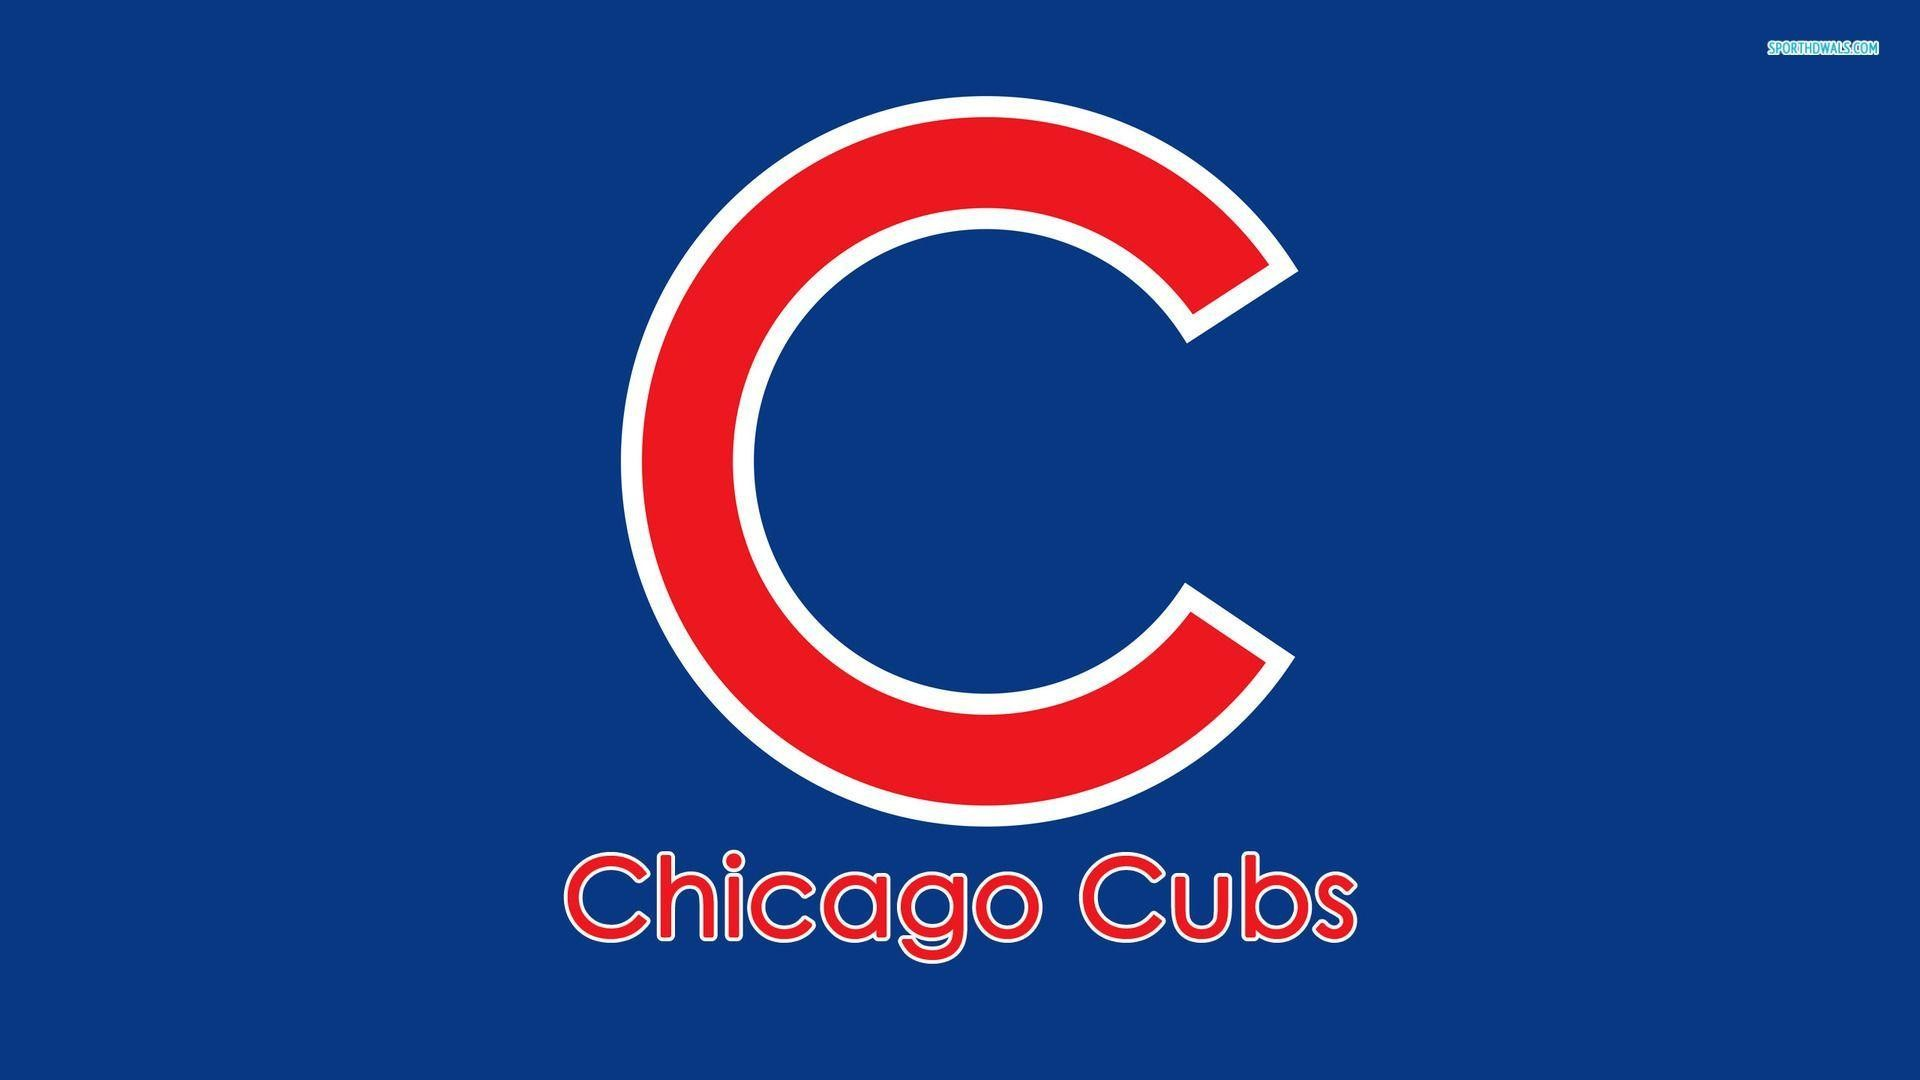 Chicago Cubs Wallpaper Iphone X Retro Chicago Cubs Wallpaper 57 Images